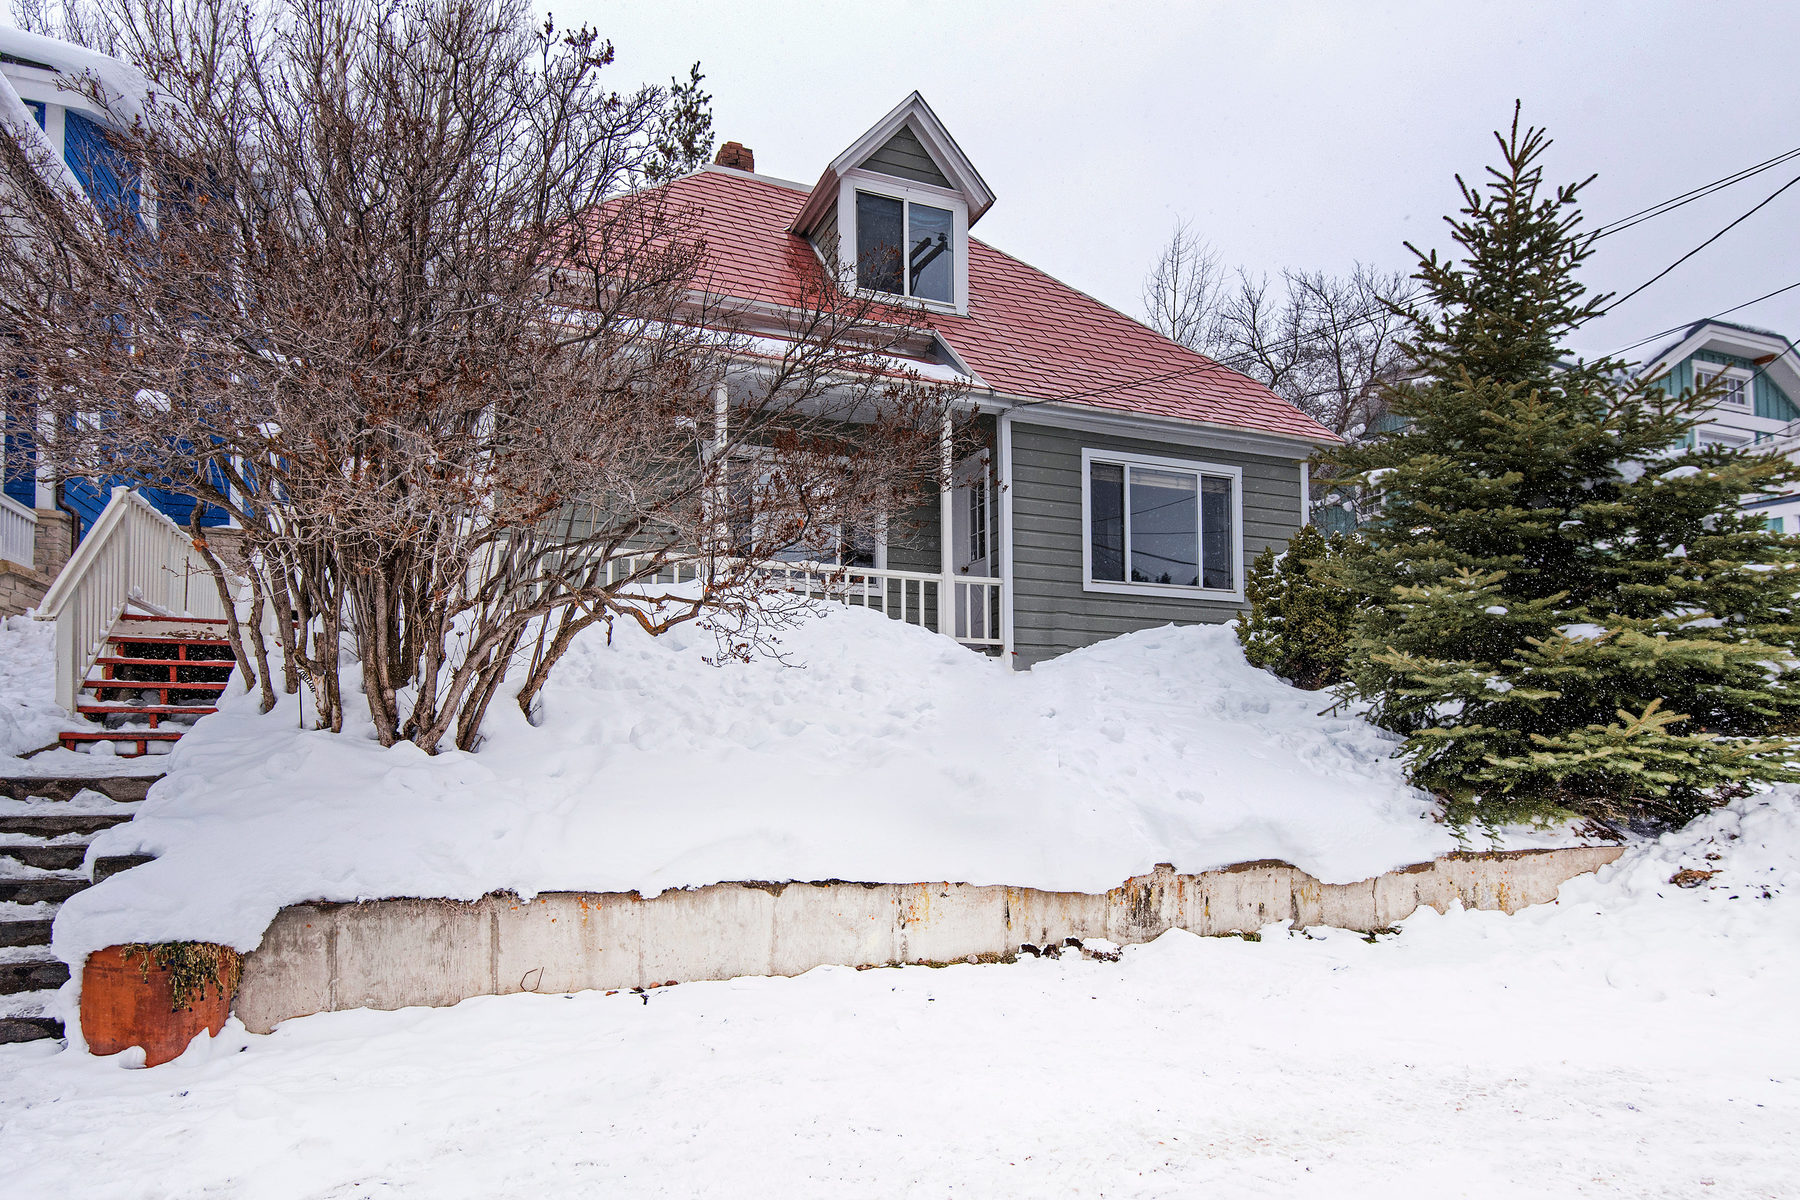 Single Family Home for Sale at Fantastic Old Town Opportunity! 1063 Empire Ave Park City, Utah 84060 United States